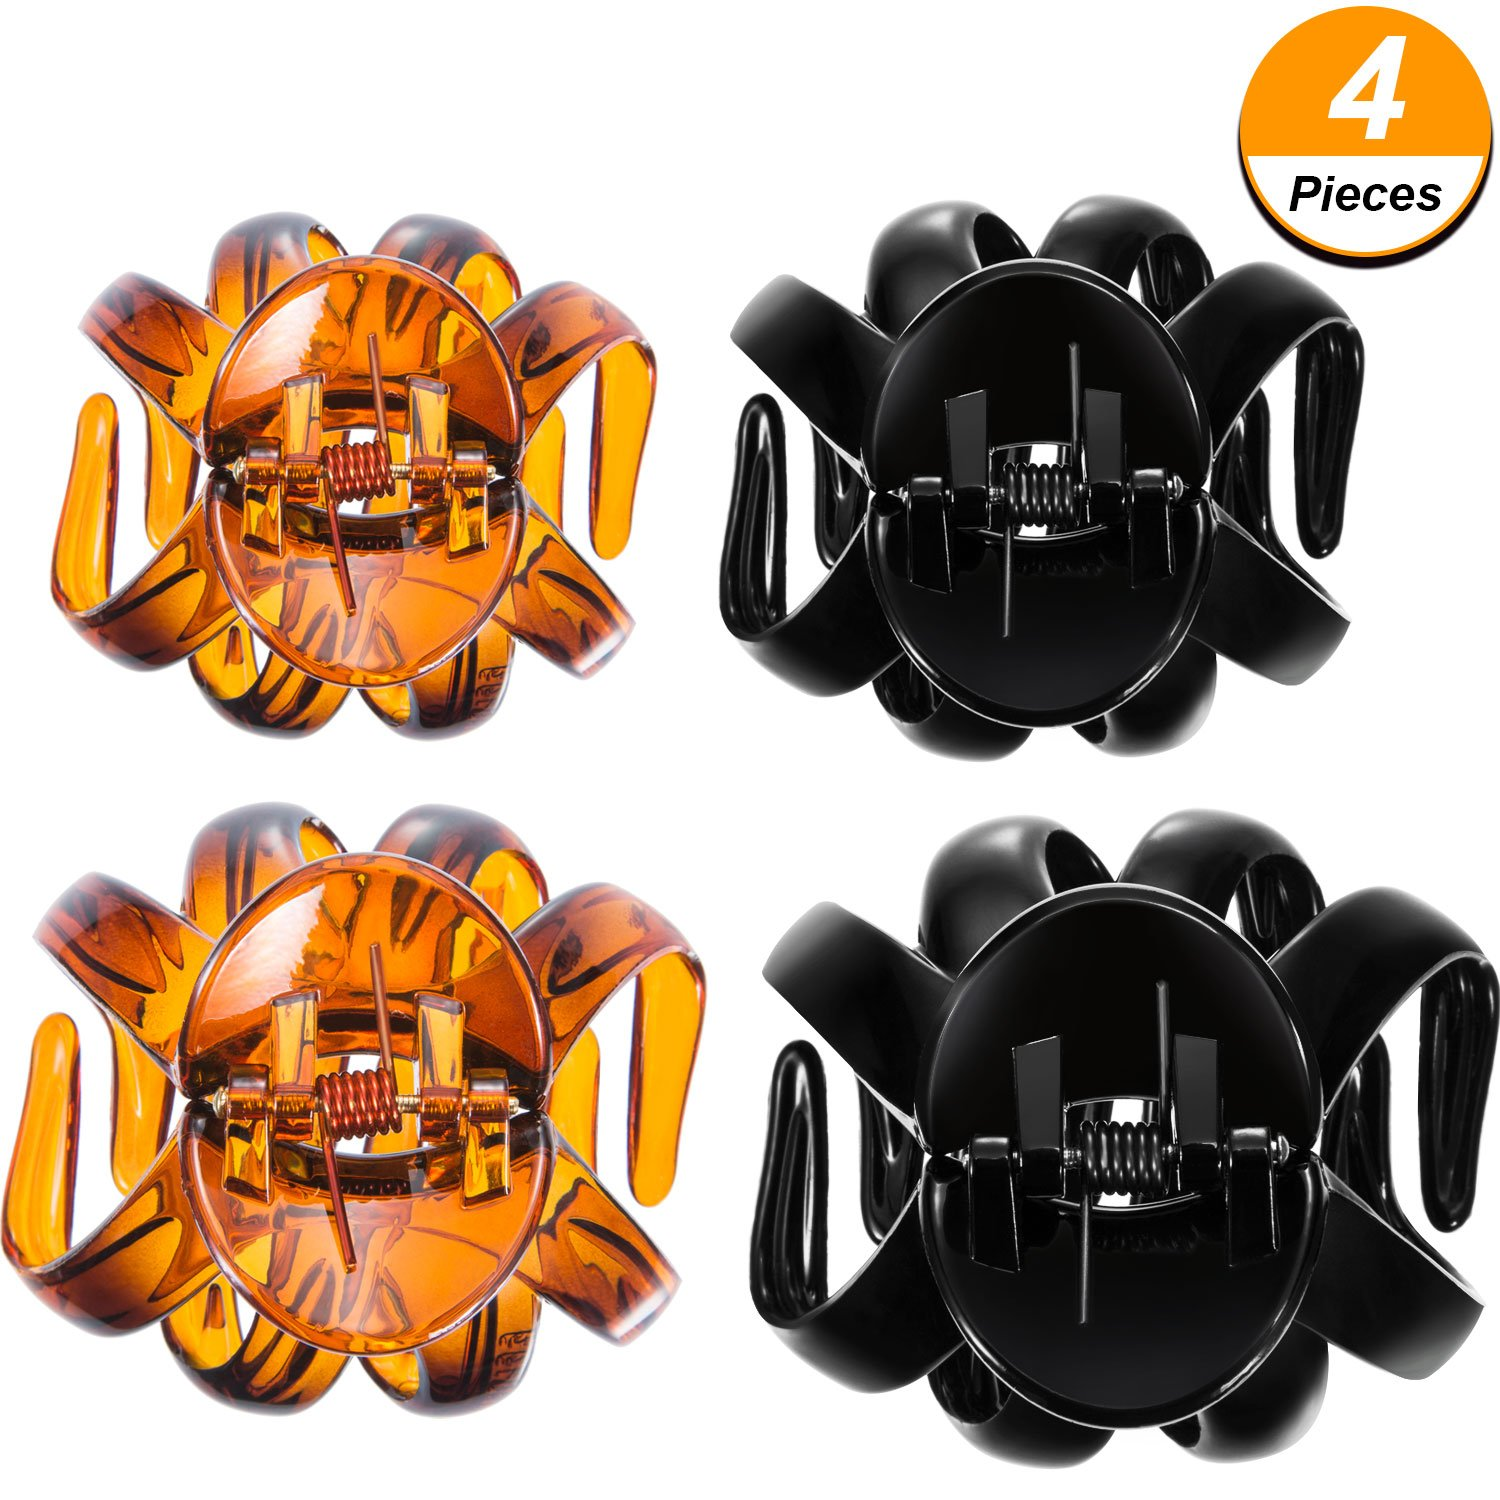 4 Pieces Large Grip Octopus Clip Spider Hair Claw Octopus Jaw Hair Claw Clips for Thick Hair (8.5 cm, Black) Bememo